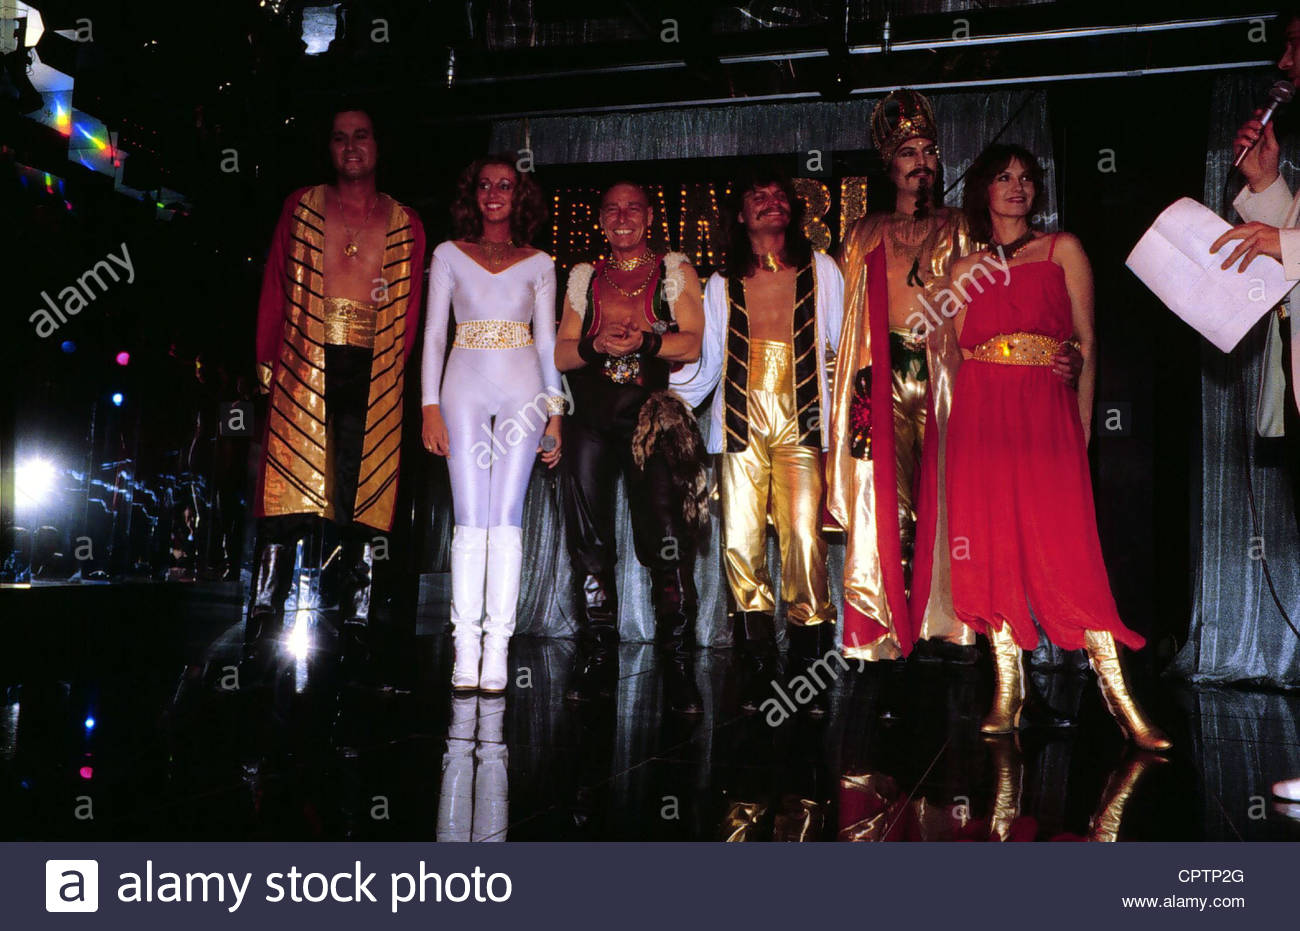 Genghis Khan Dschinghis German Pop Group Picture On Stage Wearing Costumes Early 1980s Leslie Mandoki Henrie